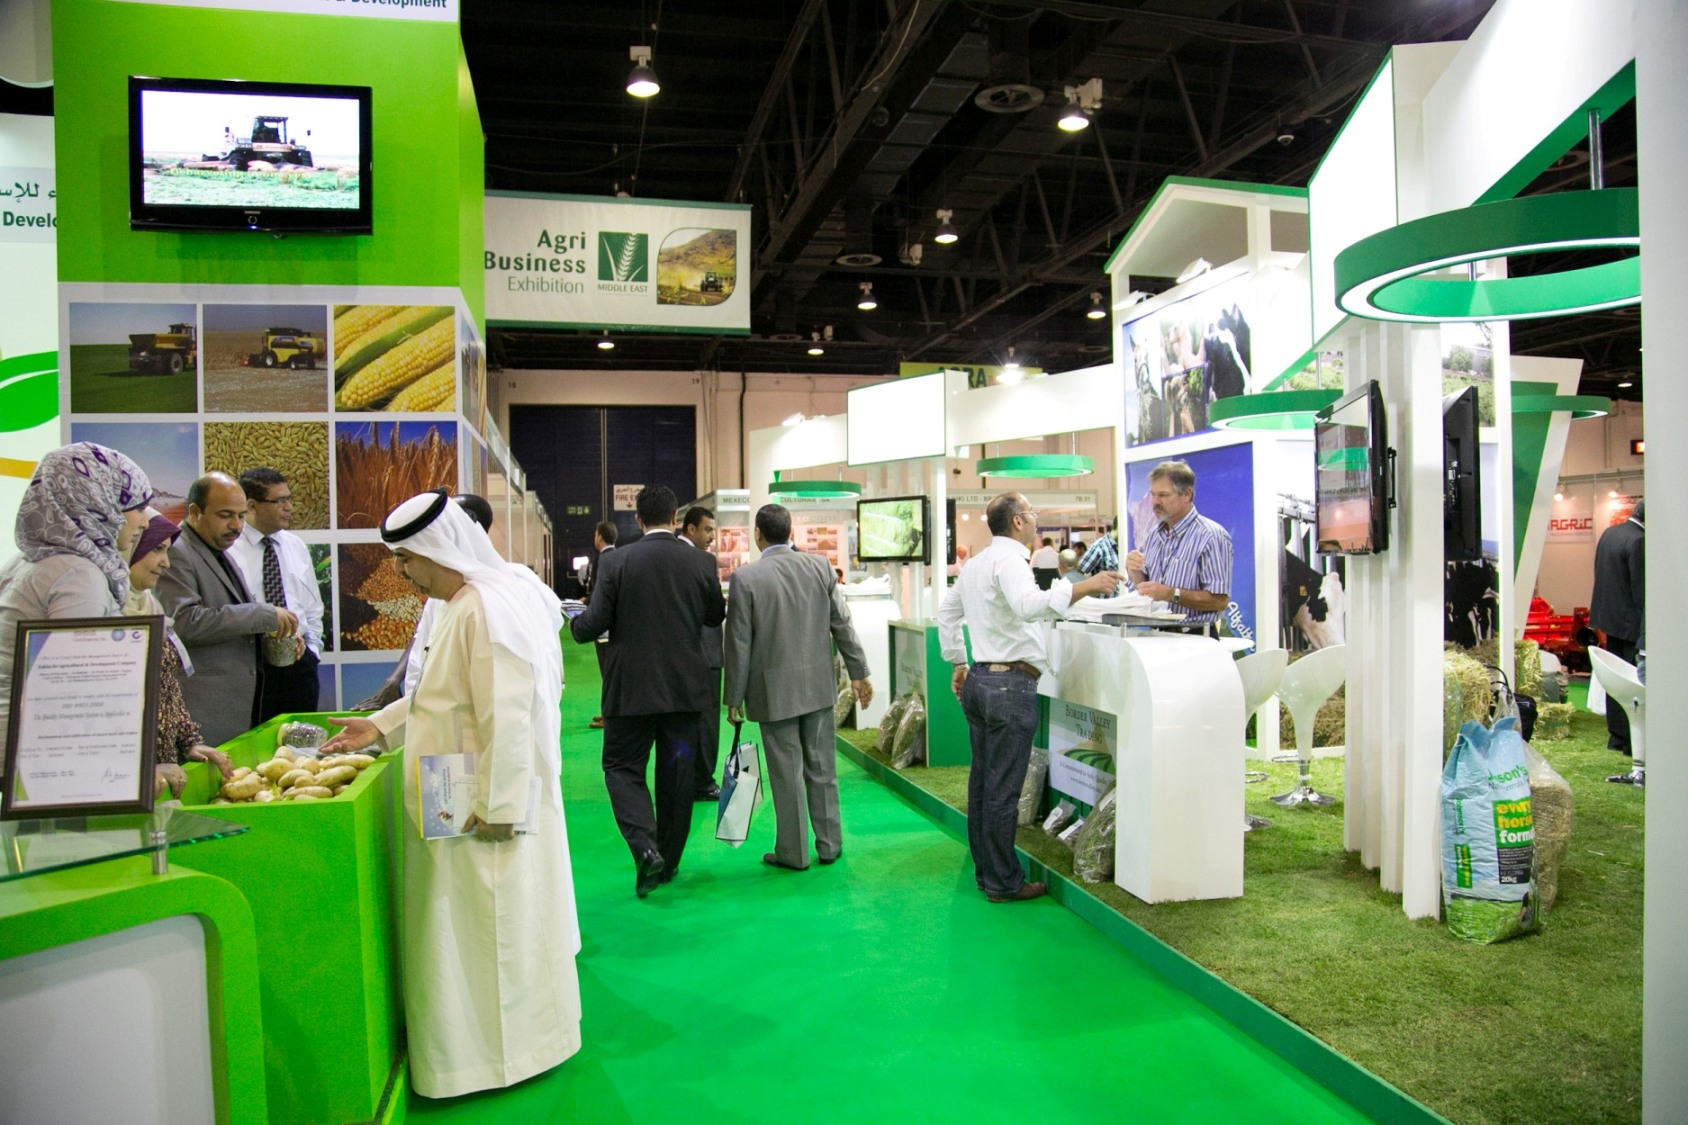 Middle East Urged To Address Food Security Issues